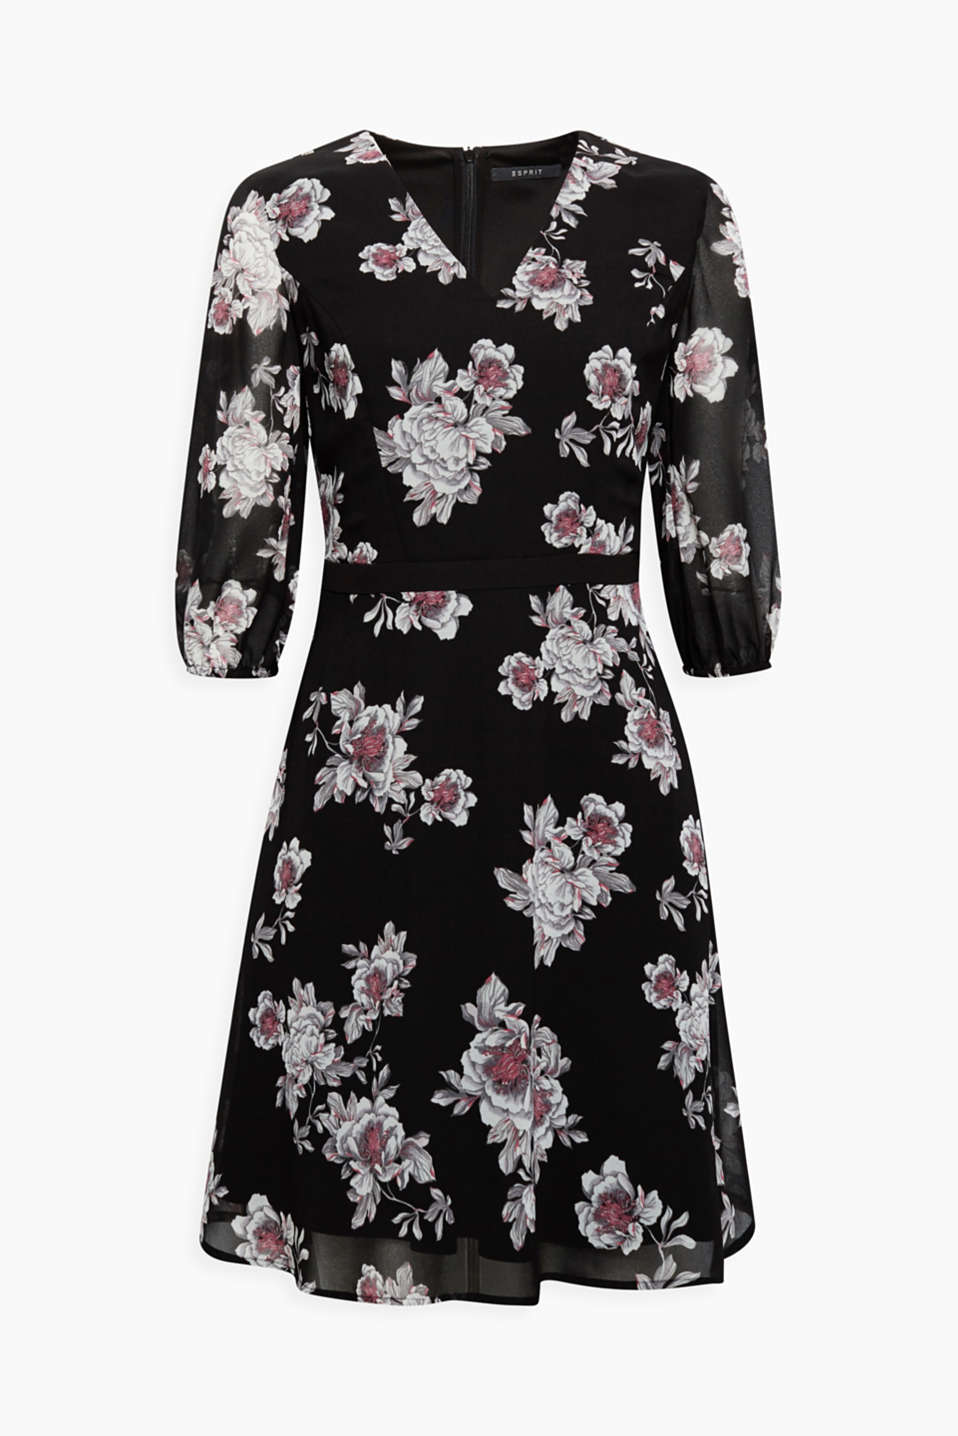 Feminine and festive - this lightweight chiffon dress with a delicate floral print can be worn on a variety of occasions!